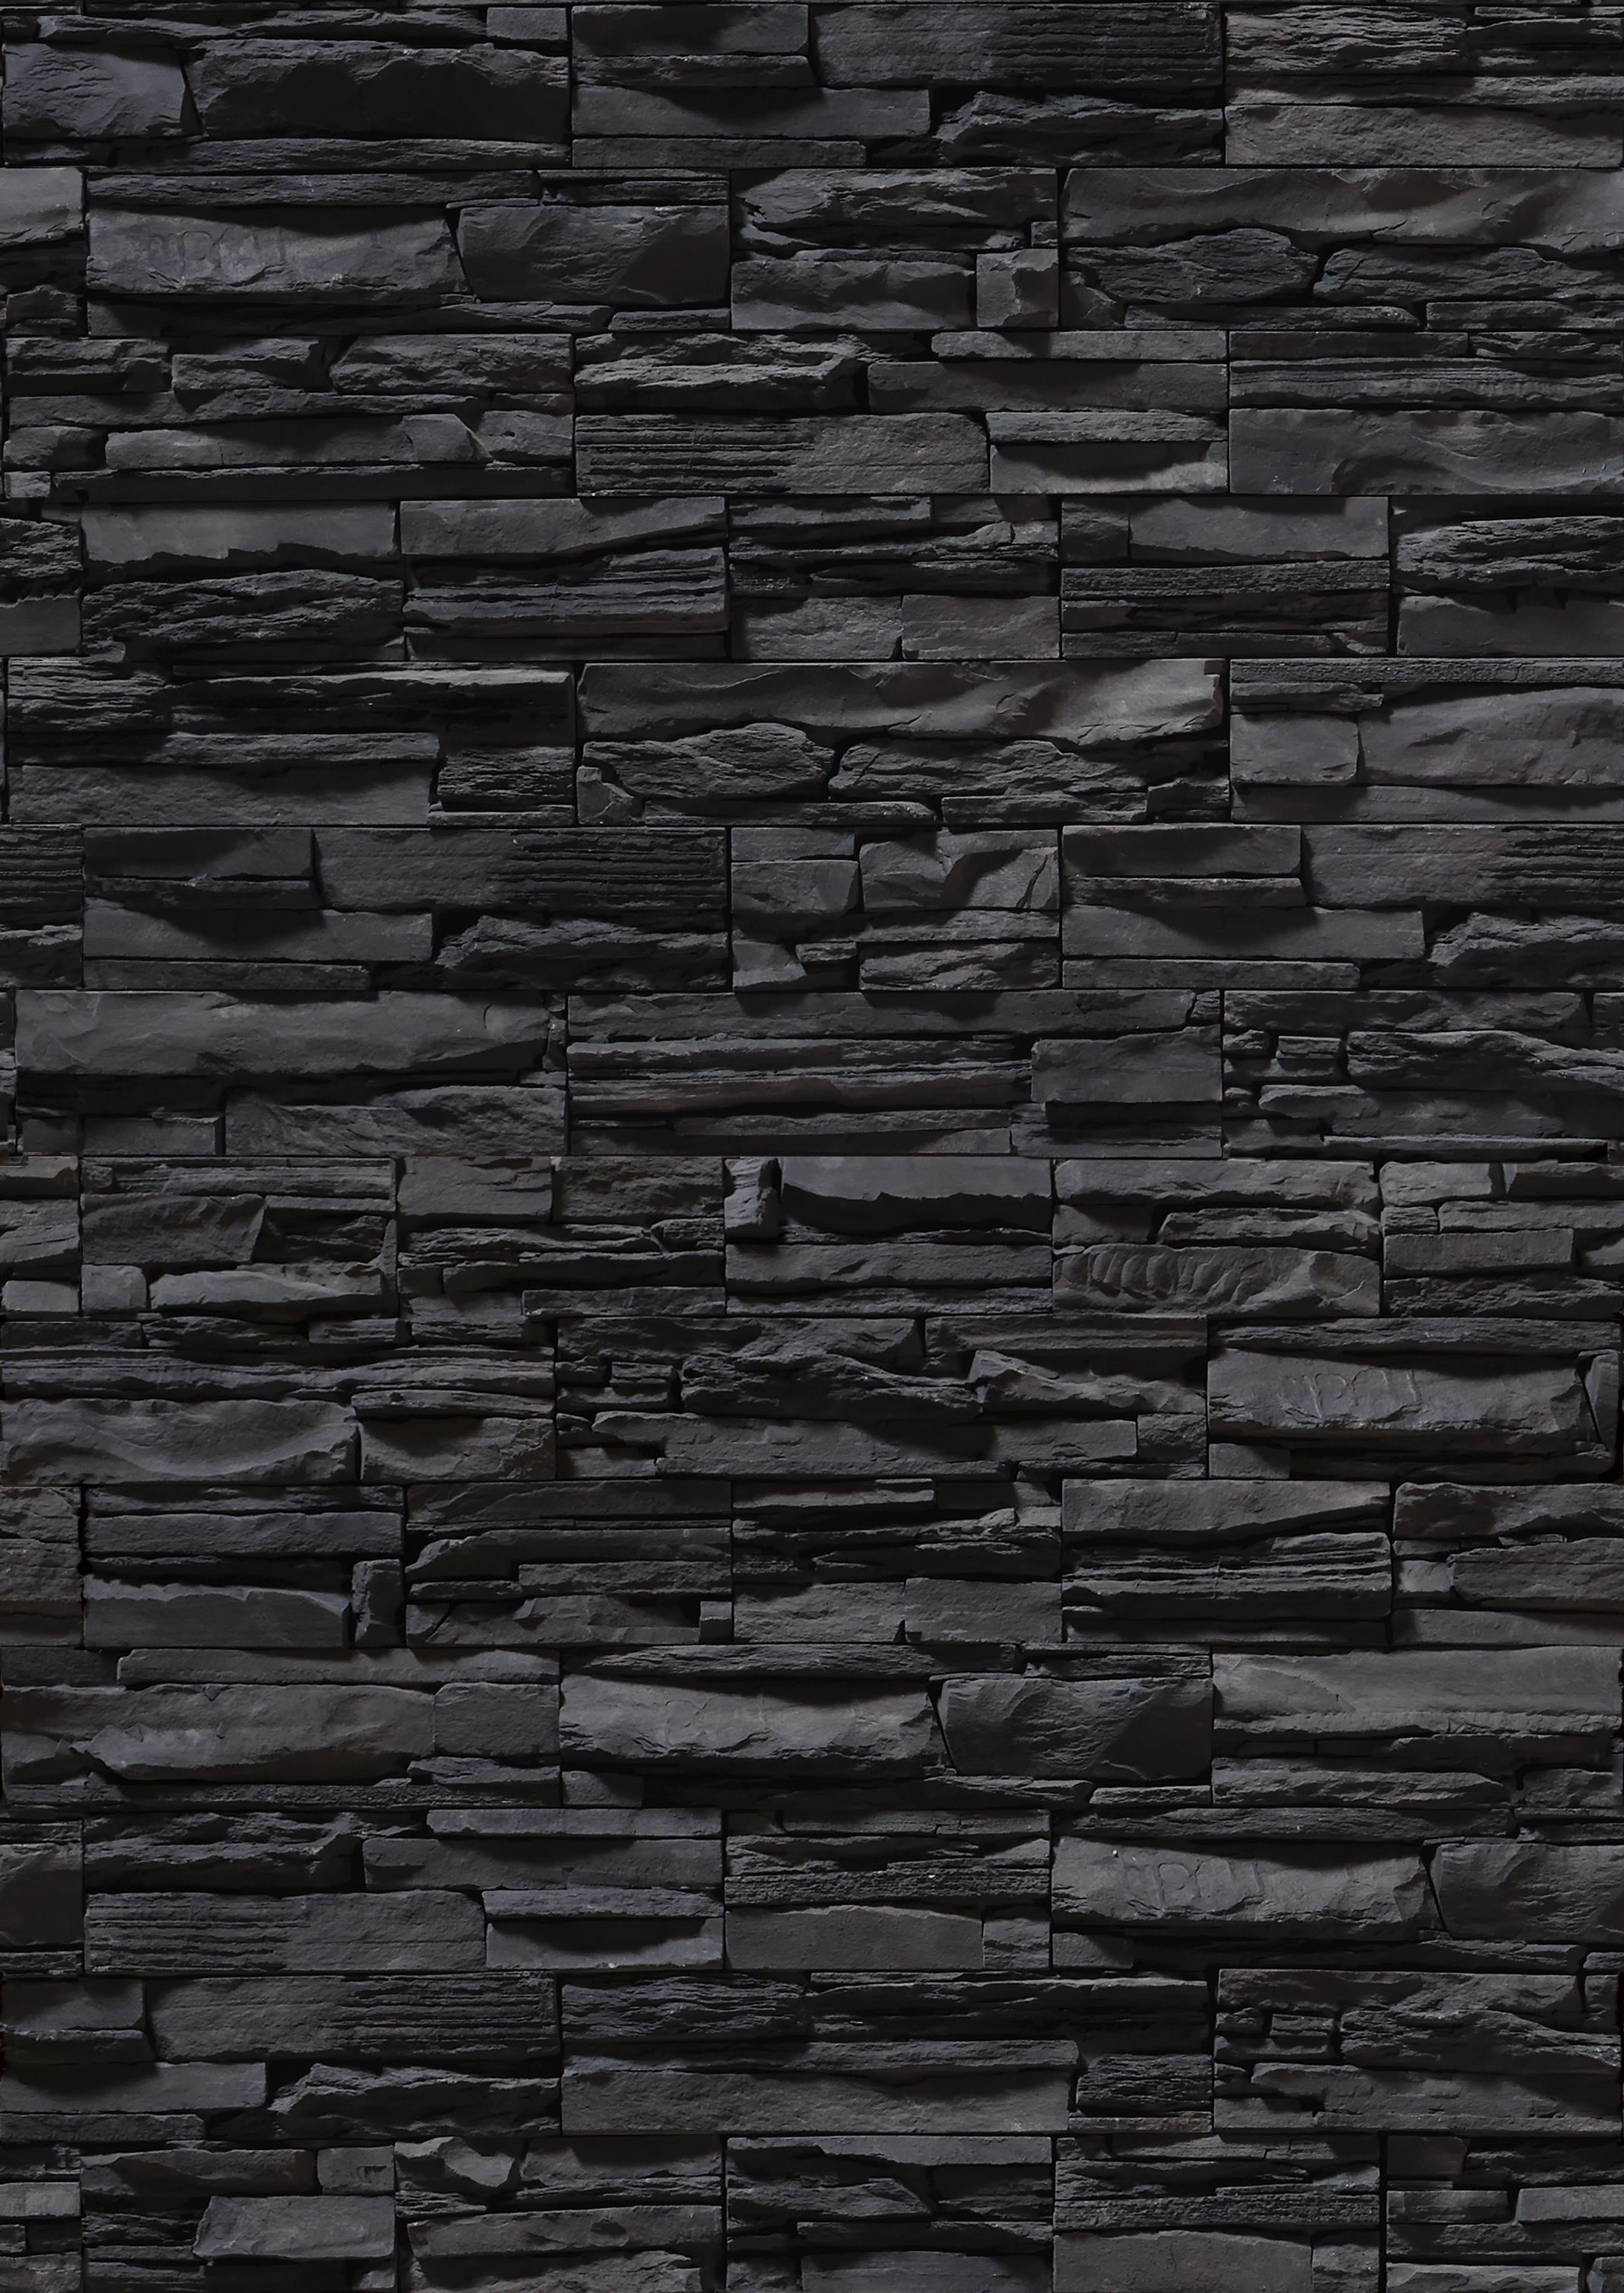 Black Stone Wall Texture Download Background Repinned By Lapicida